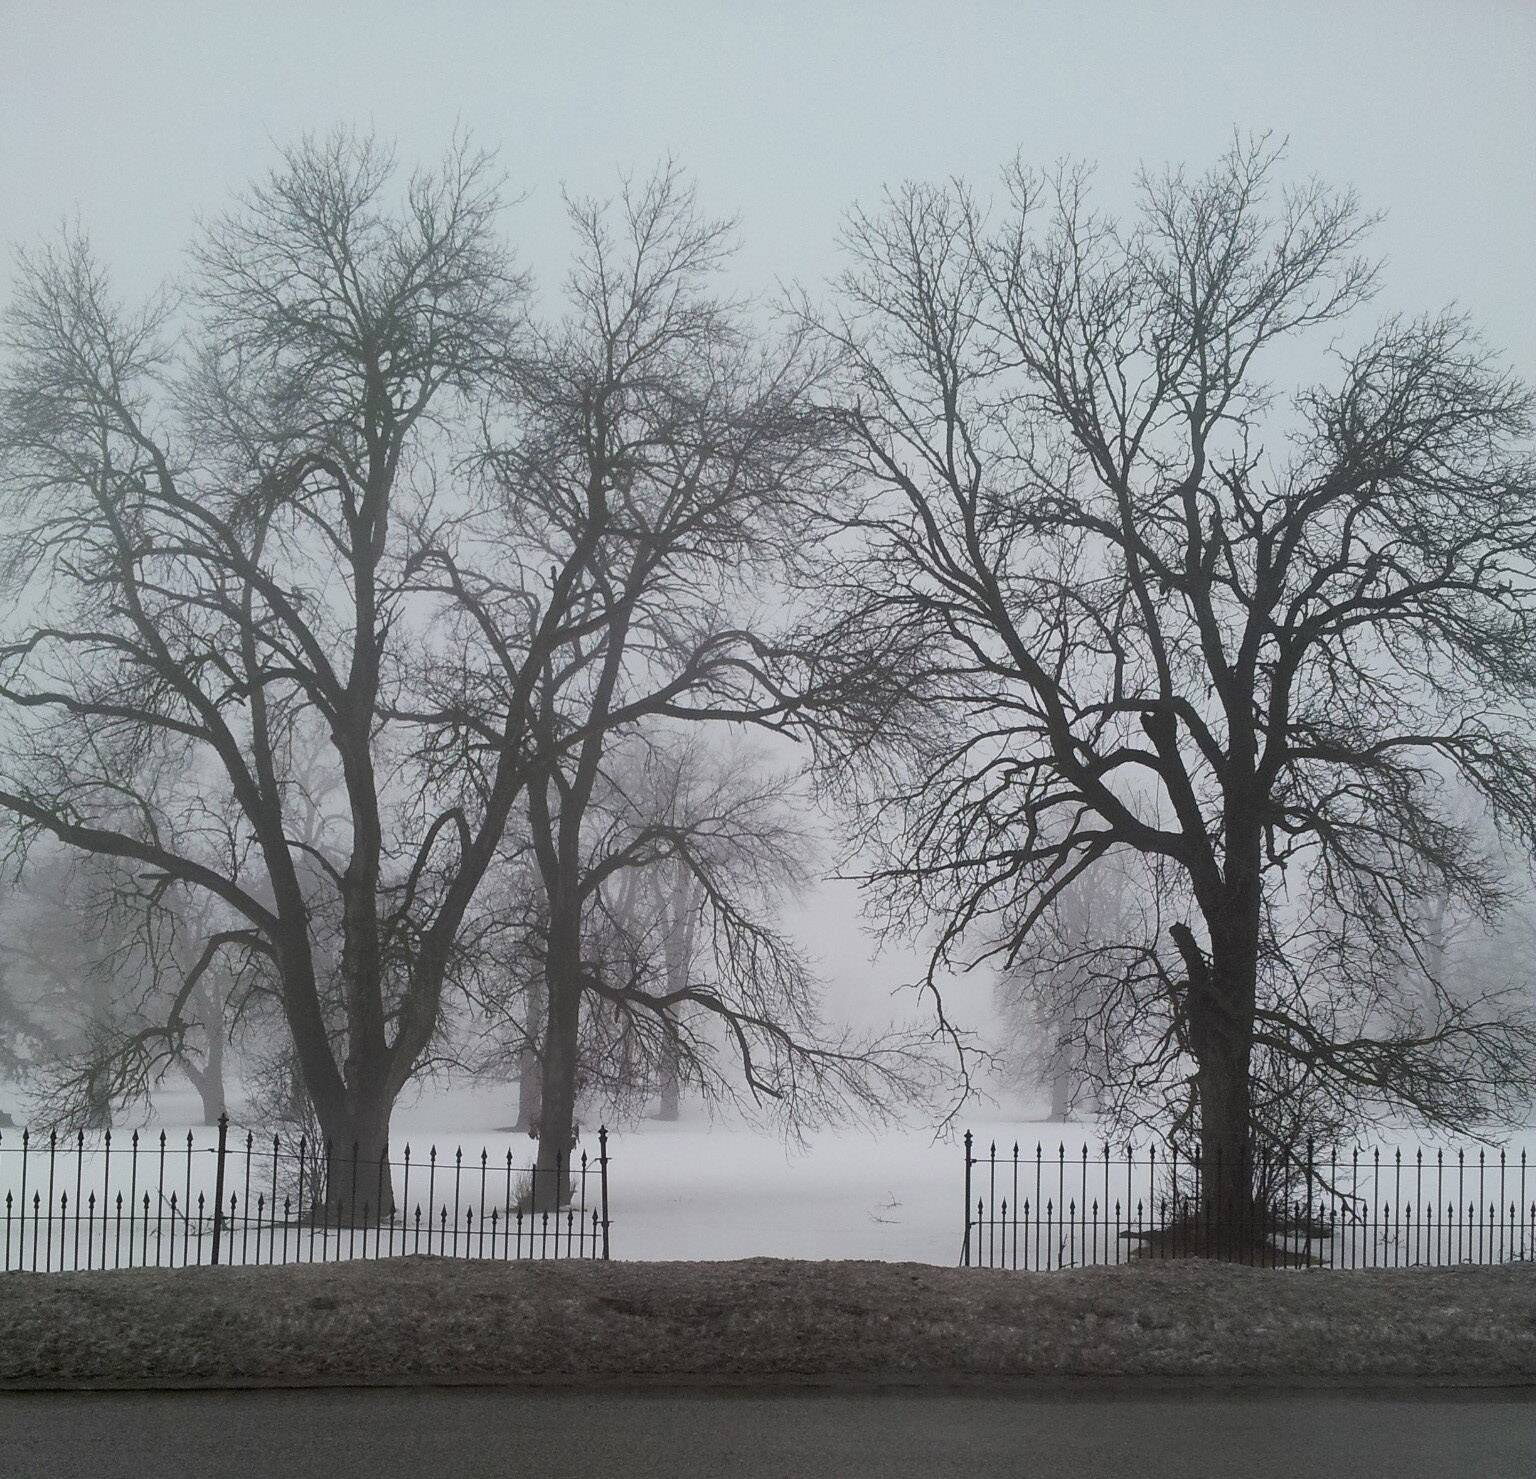 This photo was taken in March on a really foggy day while stopped in traffic on Route 31 just across from Elgin Mental Health Center.